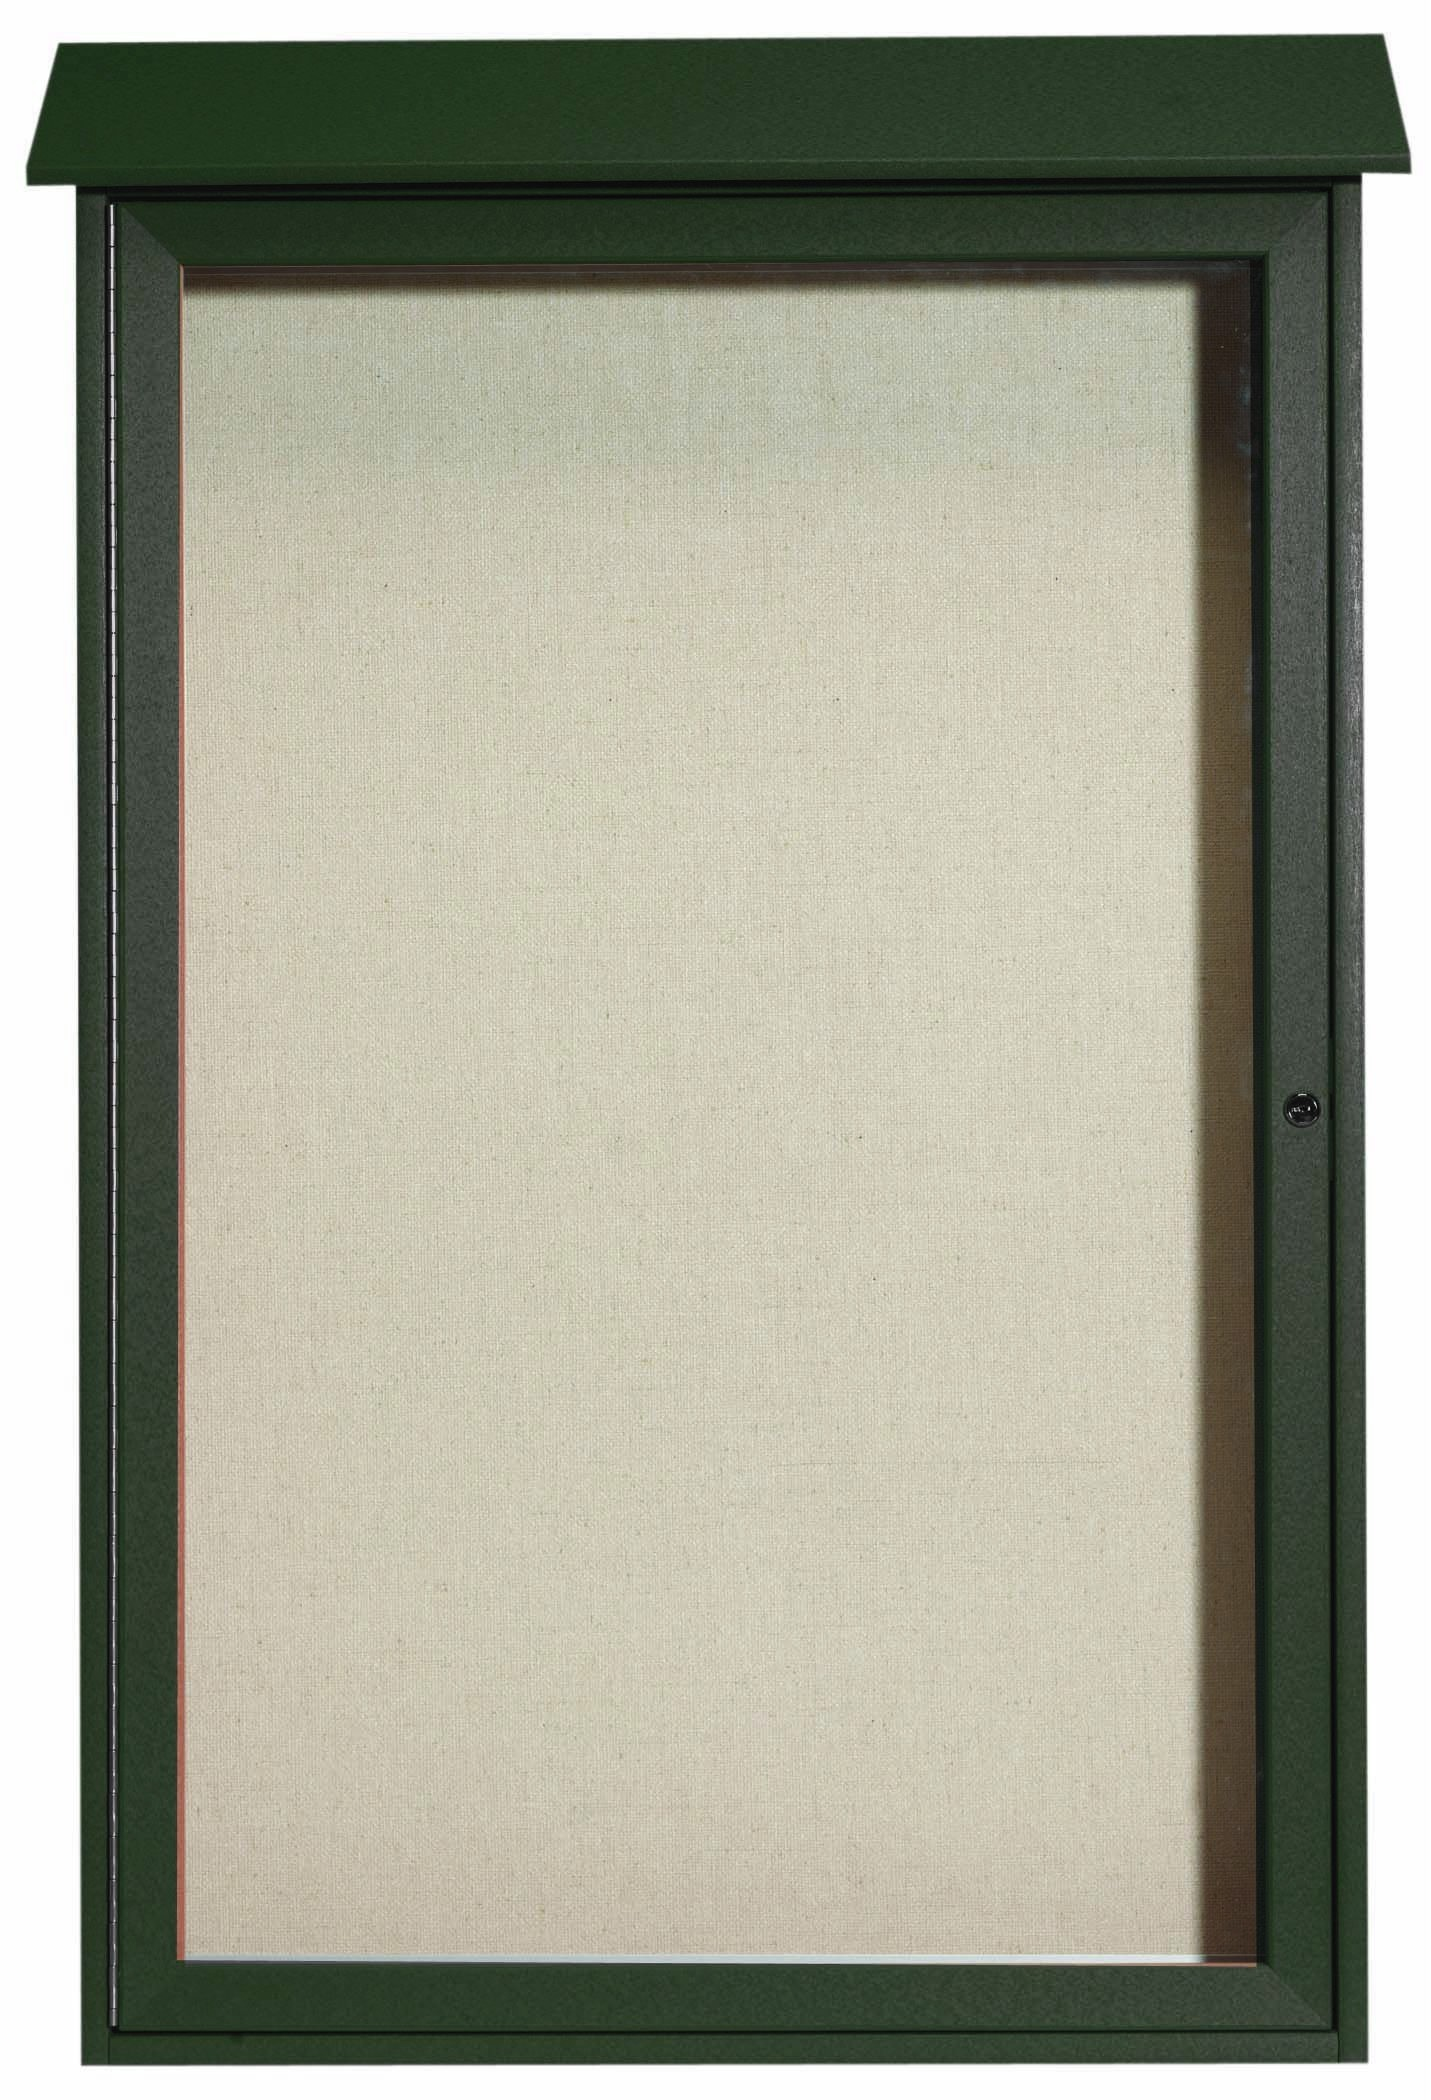 Green Single Hinged Door Plastic Lumber Message Center with Vinyl Posting Surface- 48